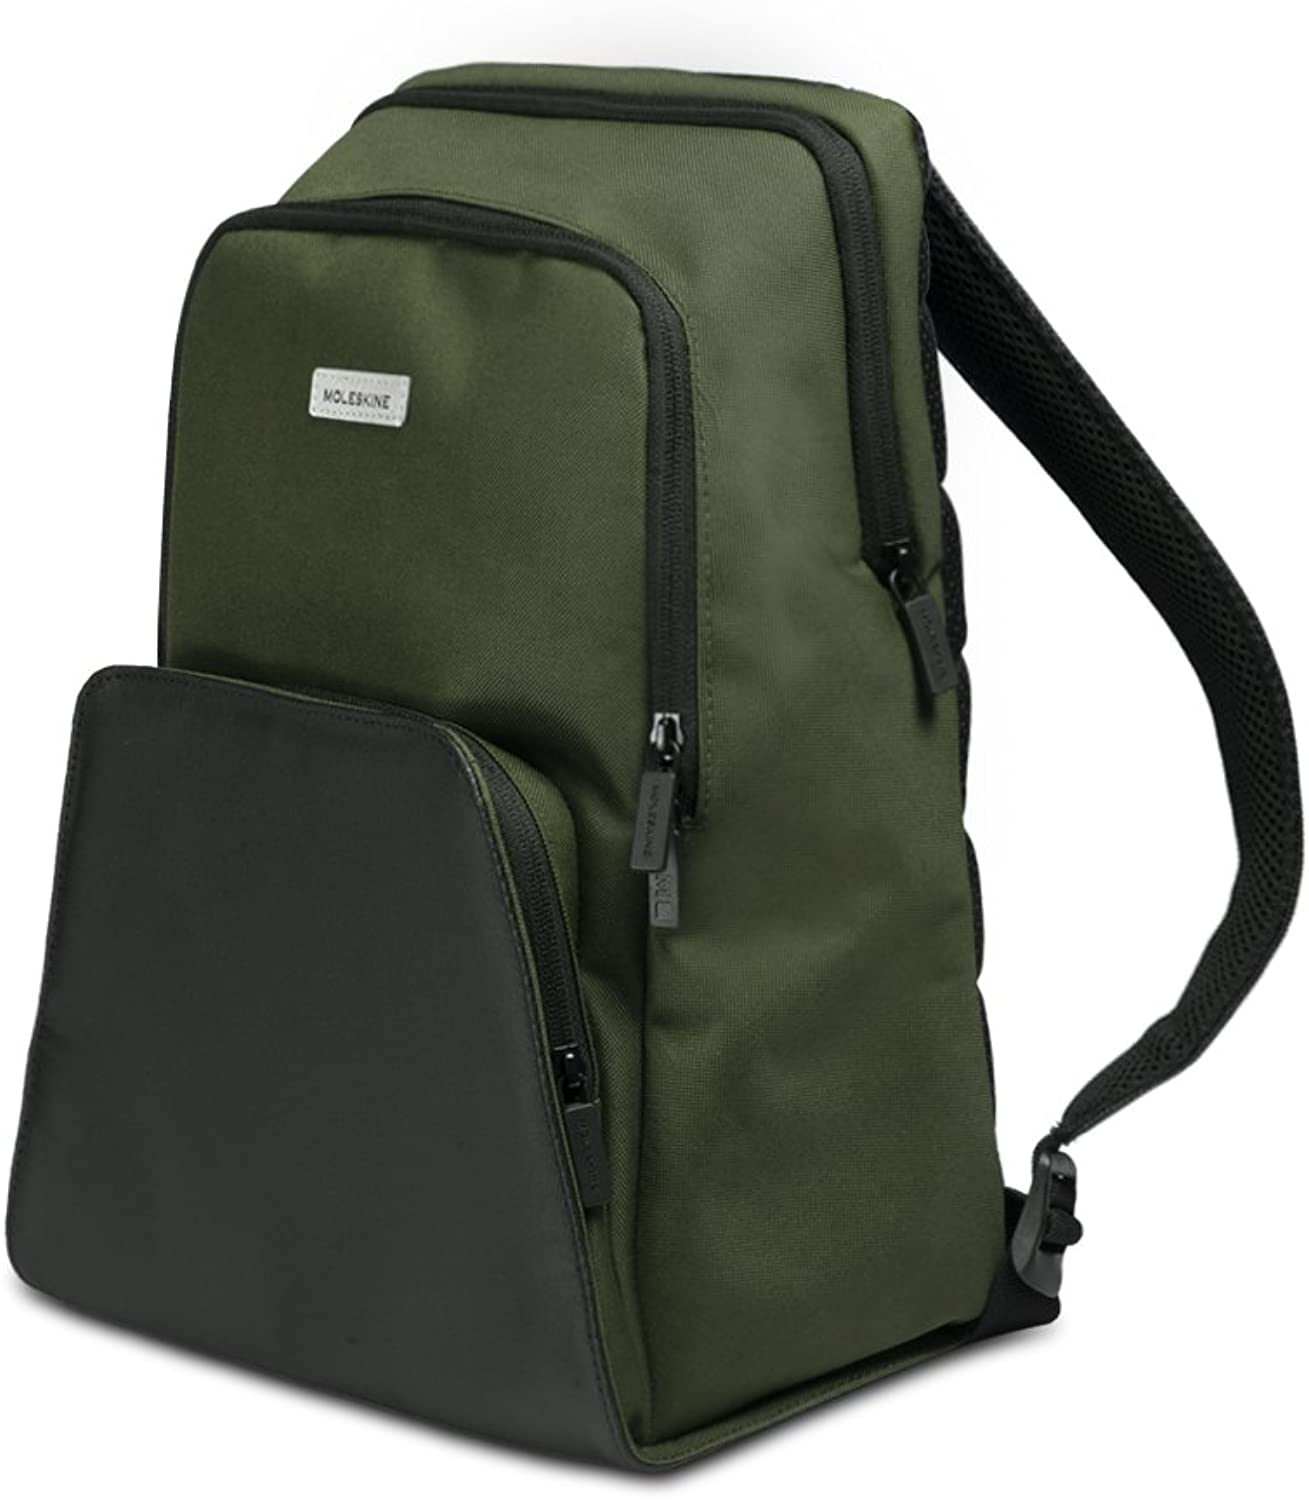 Moleskine Nomad, Medium, Backpack, Conifer Green